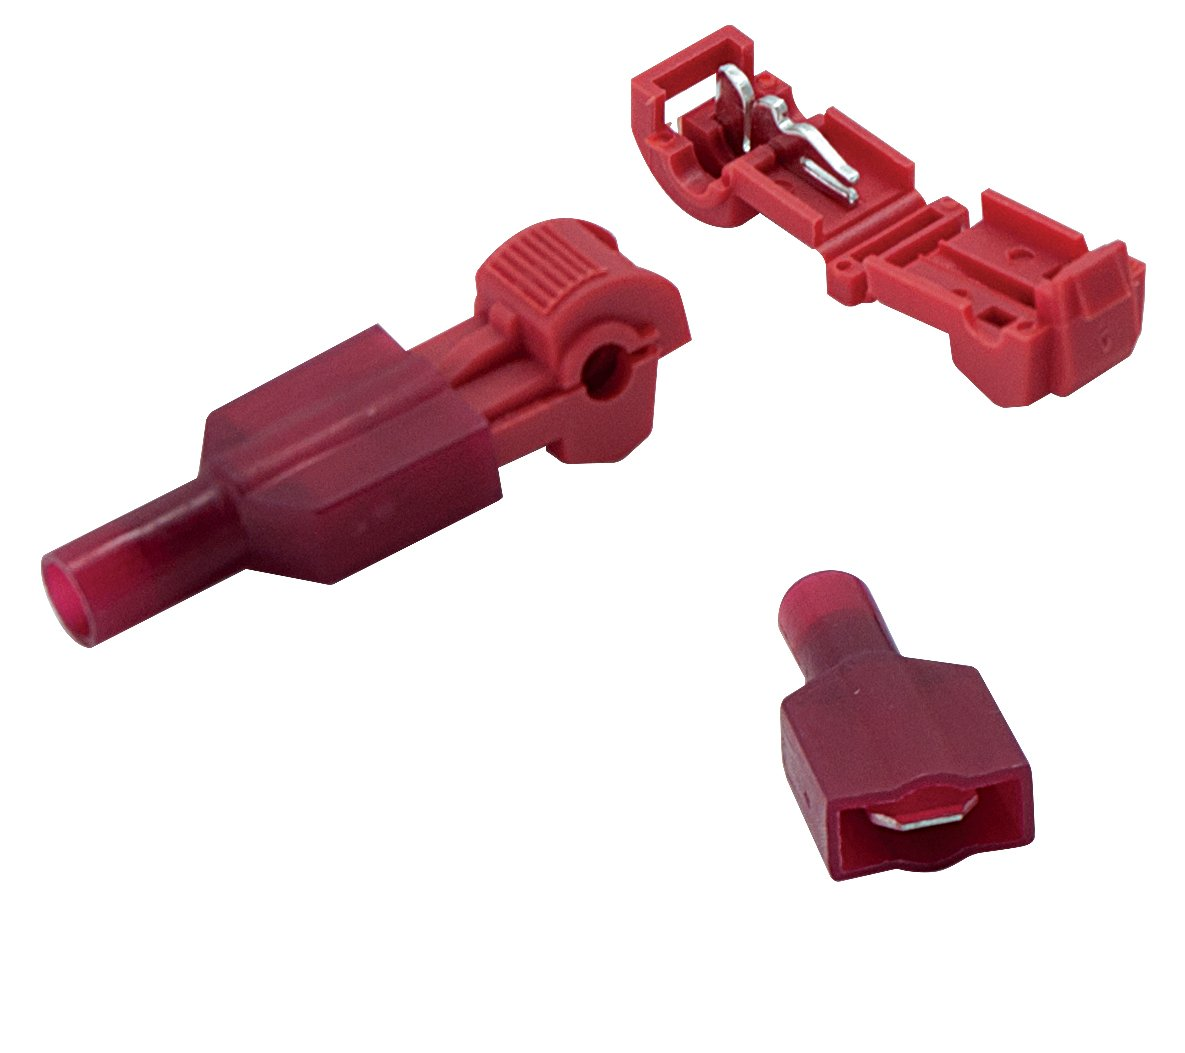 100 PCS Red Nylon Electrical Insulated Quick Splice Spade and T-Tap Crimp Terminal Connectors Assortment MaxBrite Components